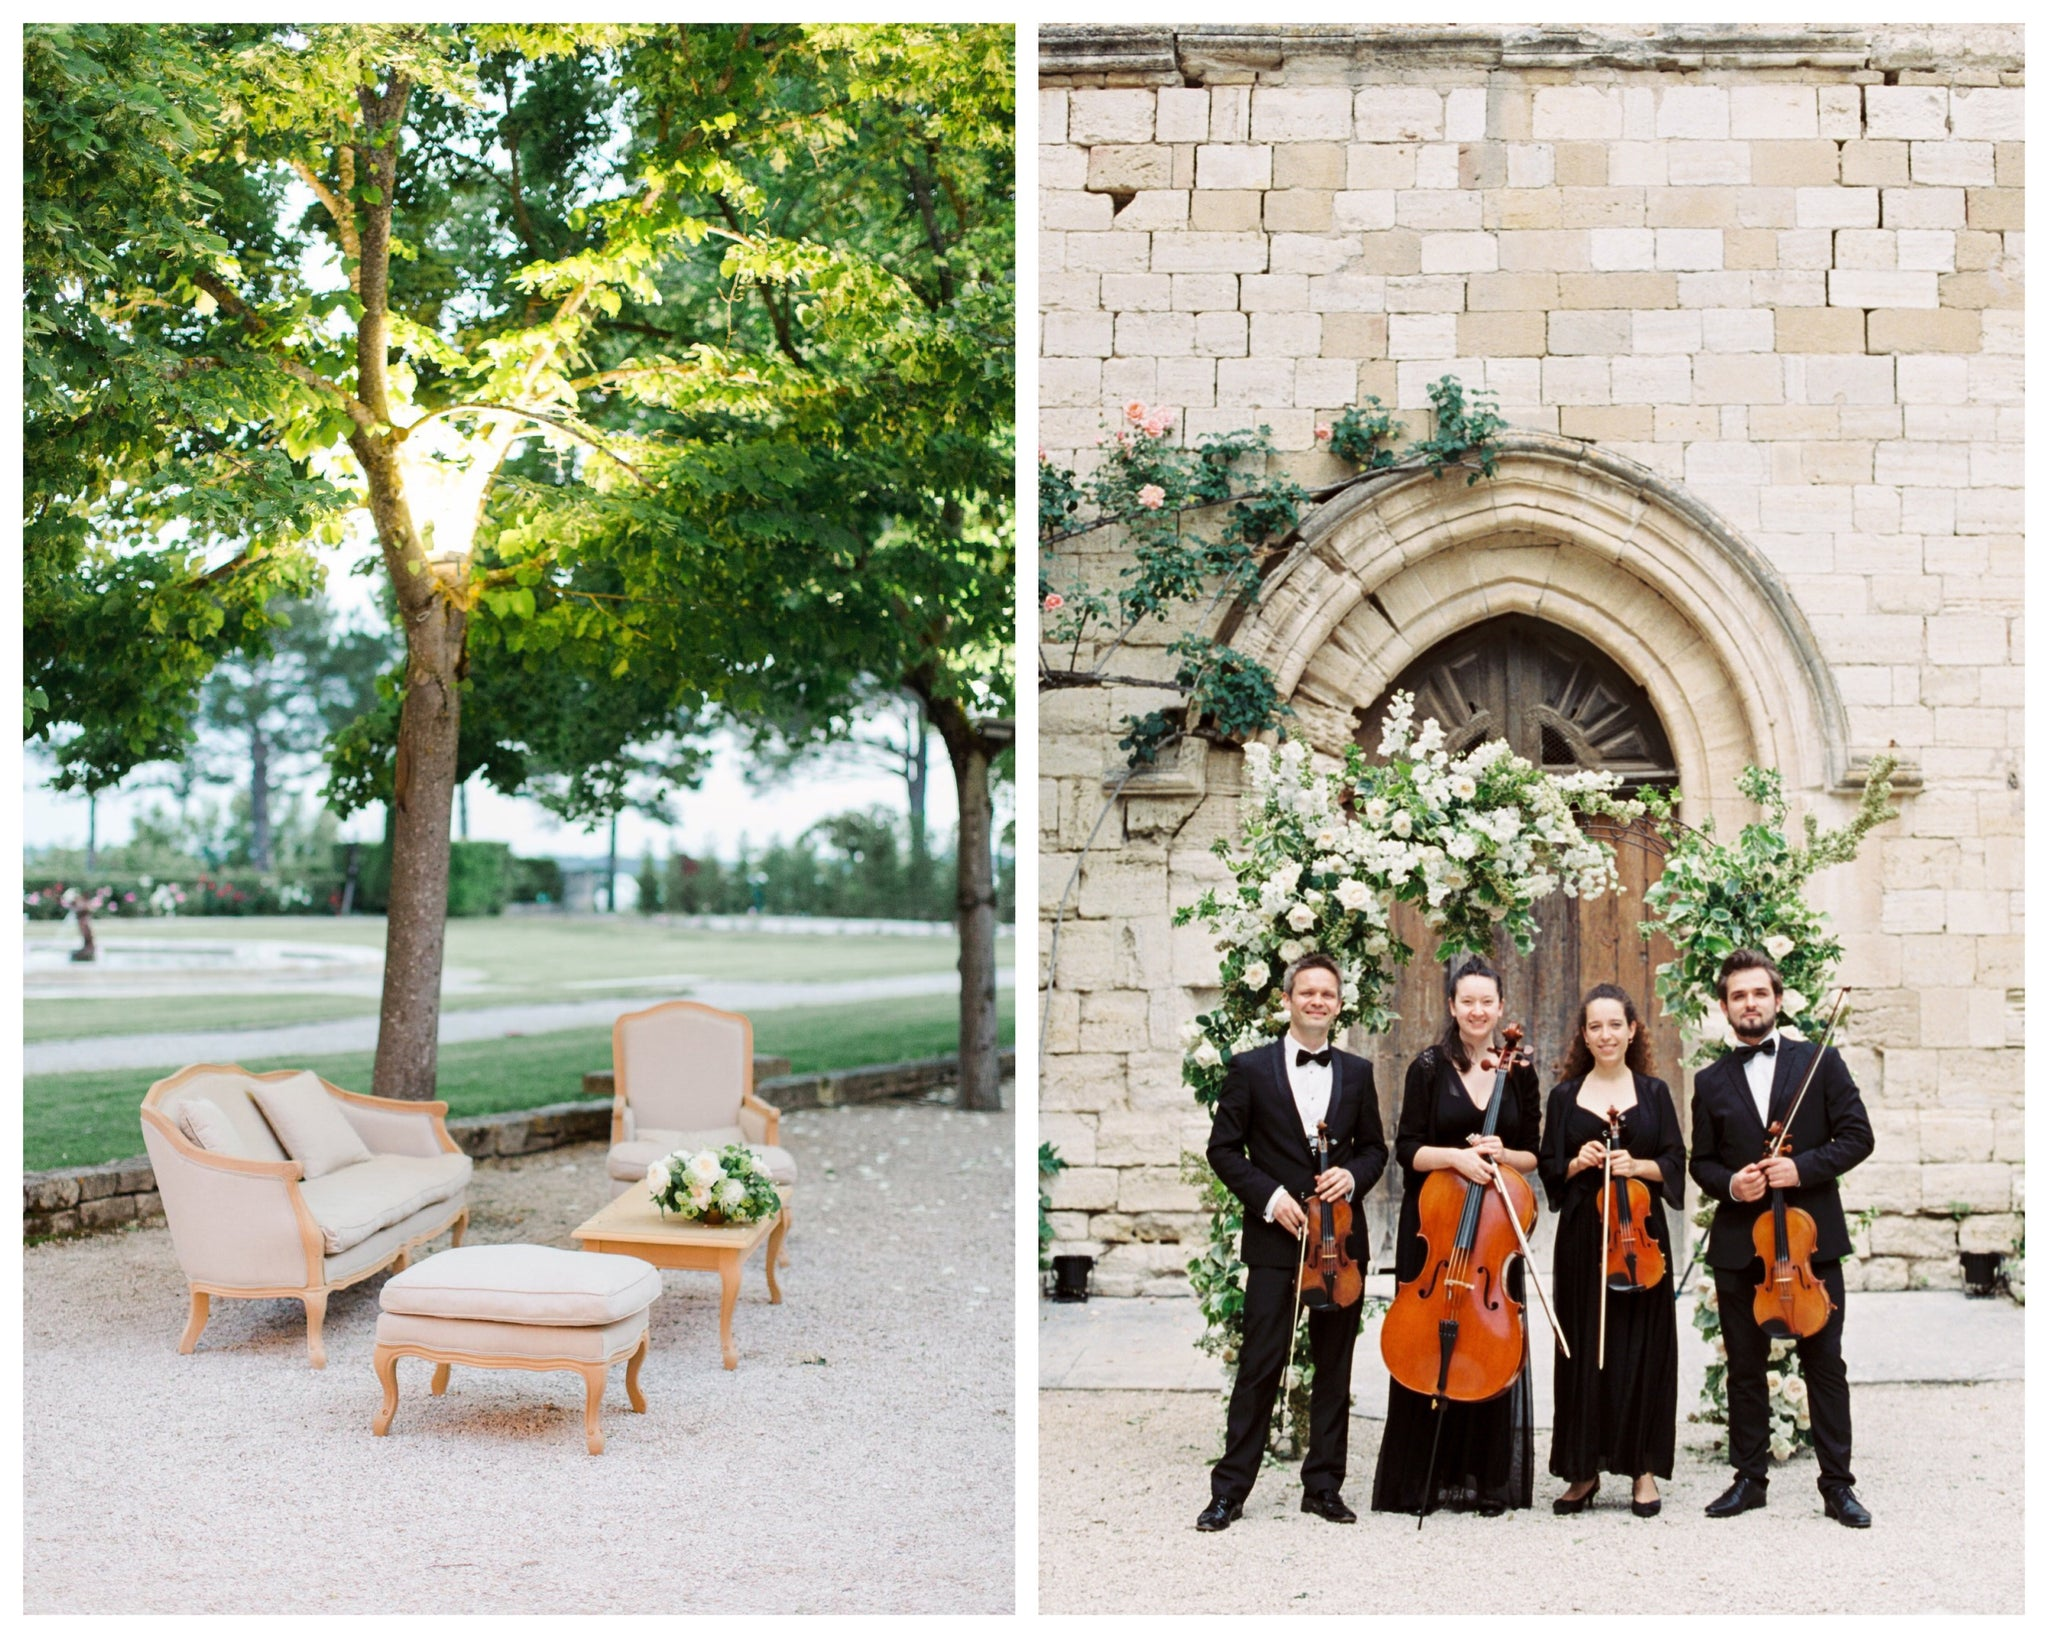 Katie Dean Jewelry romantic destination wedding at a chateau, Provence, France, Kingswood Four String Quartet + venue